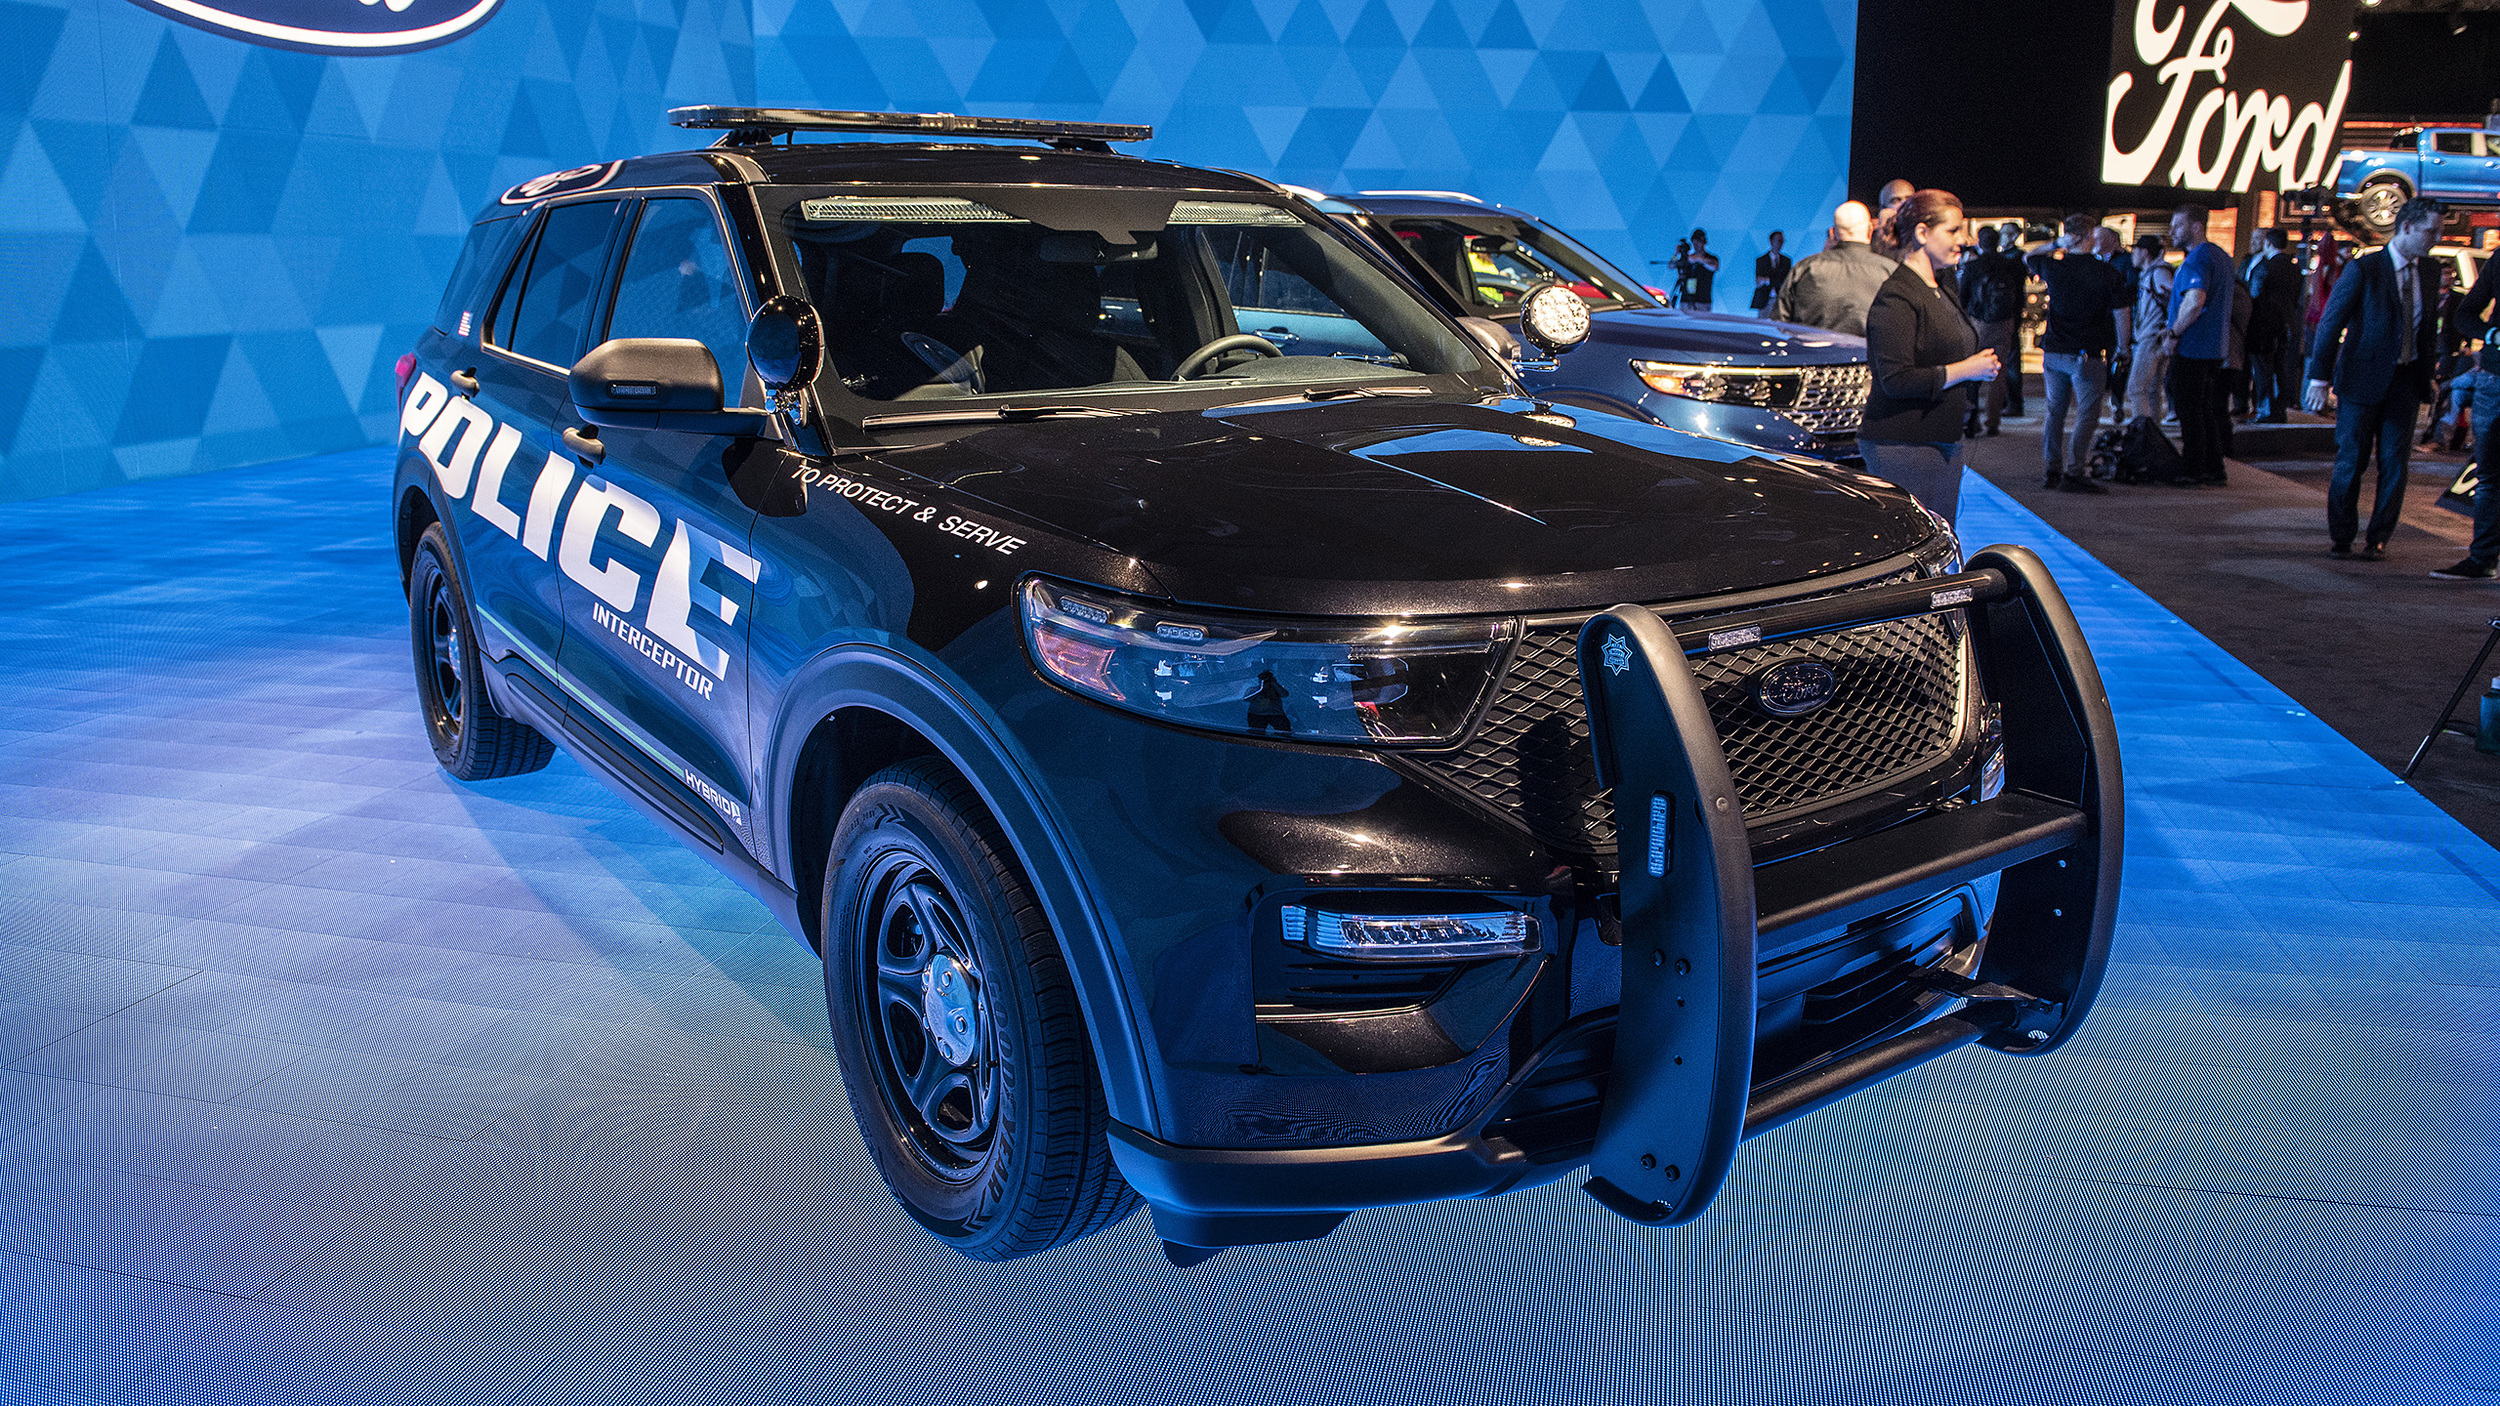 2020 Ford Police Interceptor Utility - Used Car Reviews Cars Review Release Raiacars.com